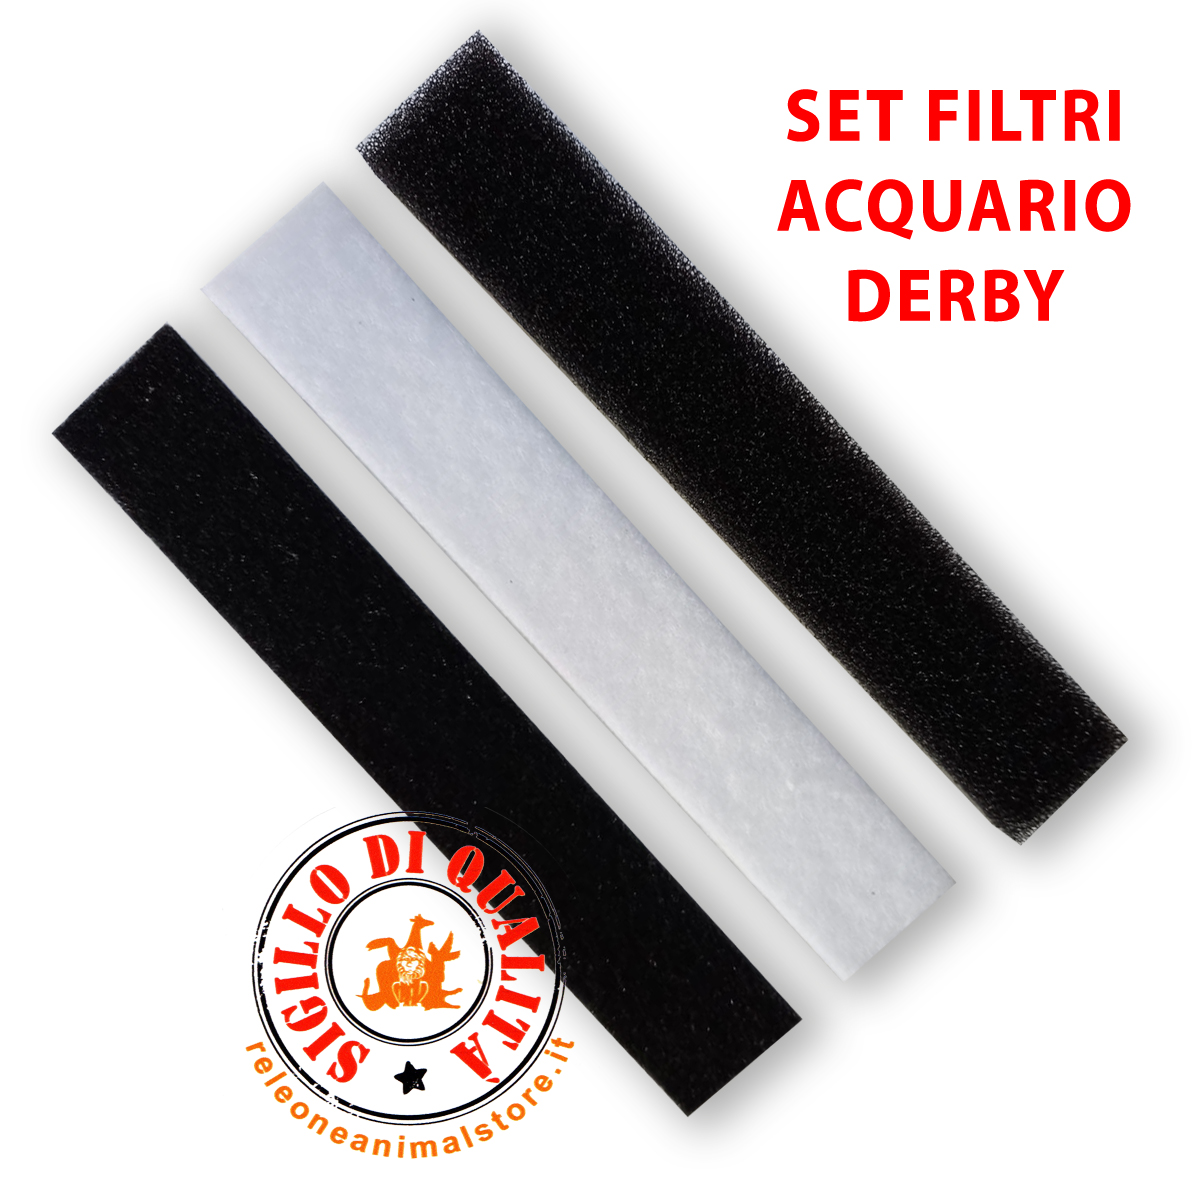 Set materiale filtrante per Acquario Derby - filtro, spugna, carbone